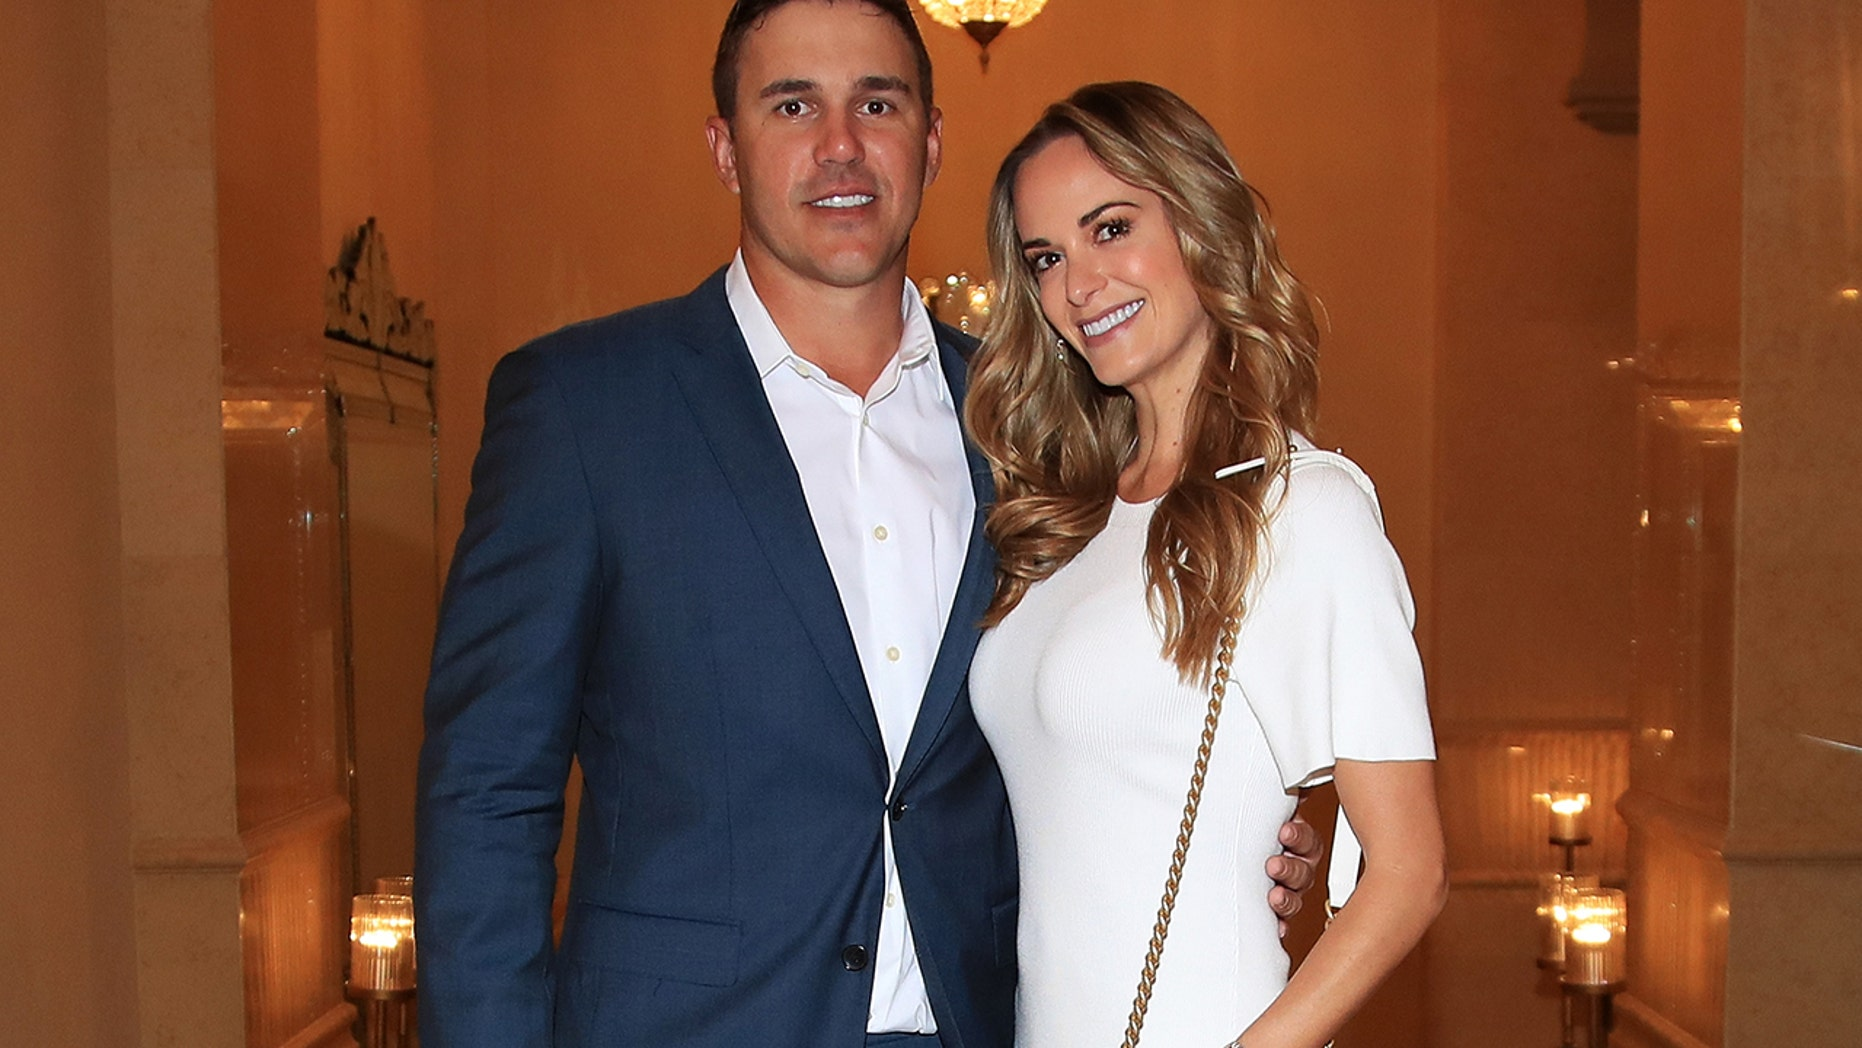 Brooks Koepka of the United States and girlfriend Jena Sims pose for a photo ahead of the Abu Dhabi HSBC Golf Championship at the Abu Dhabi Golf Club on January 14, 2019 in Abu Dhabi, United Arab Emirates.